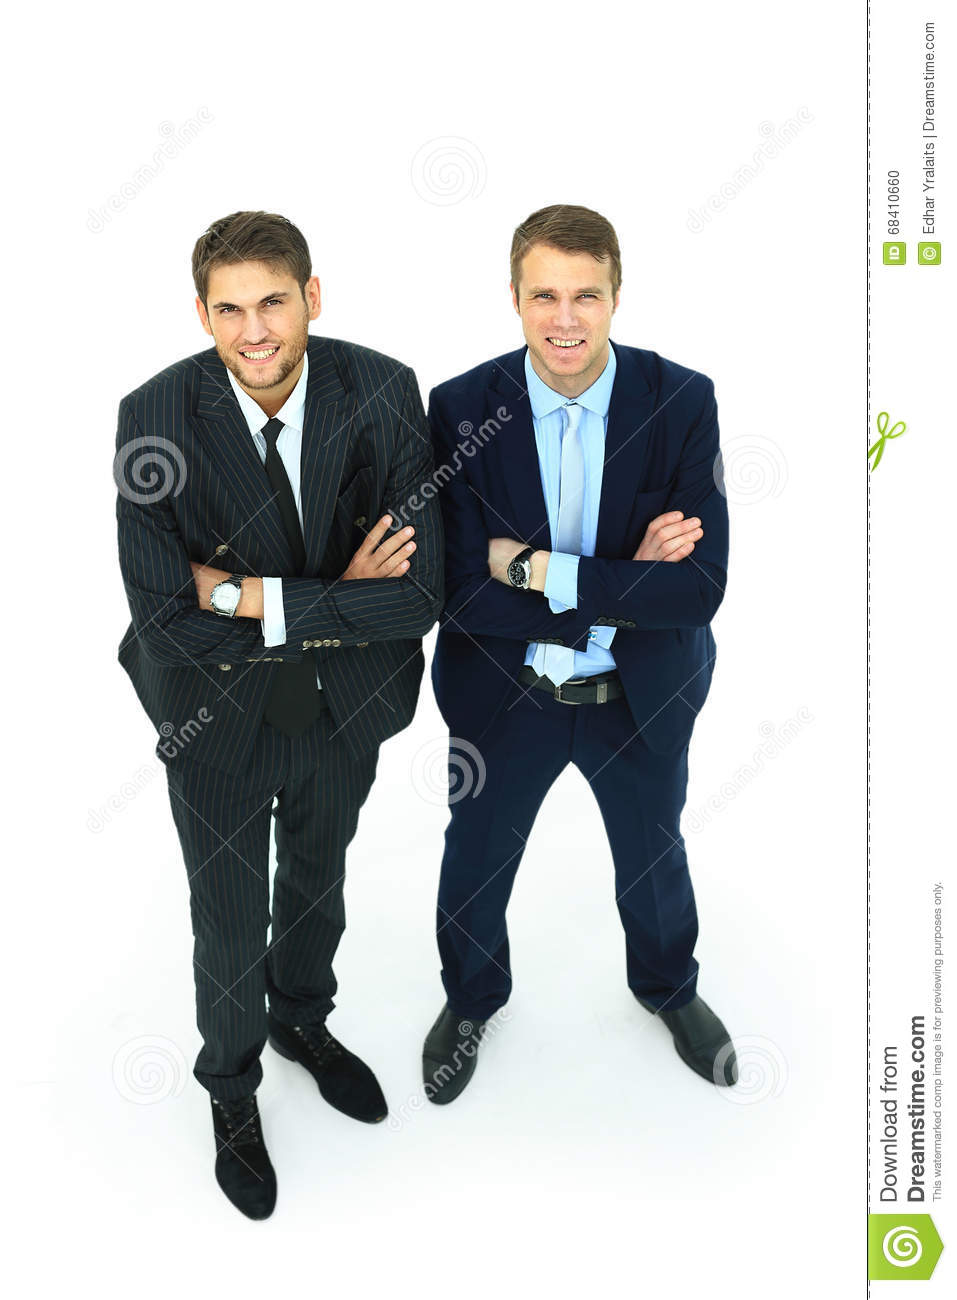 Two happy young businessmen full body